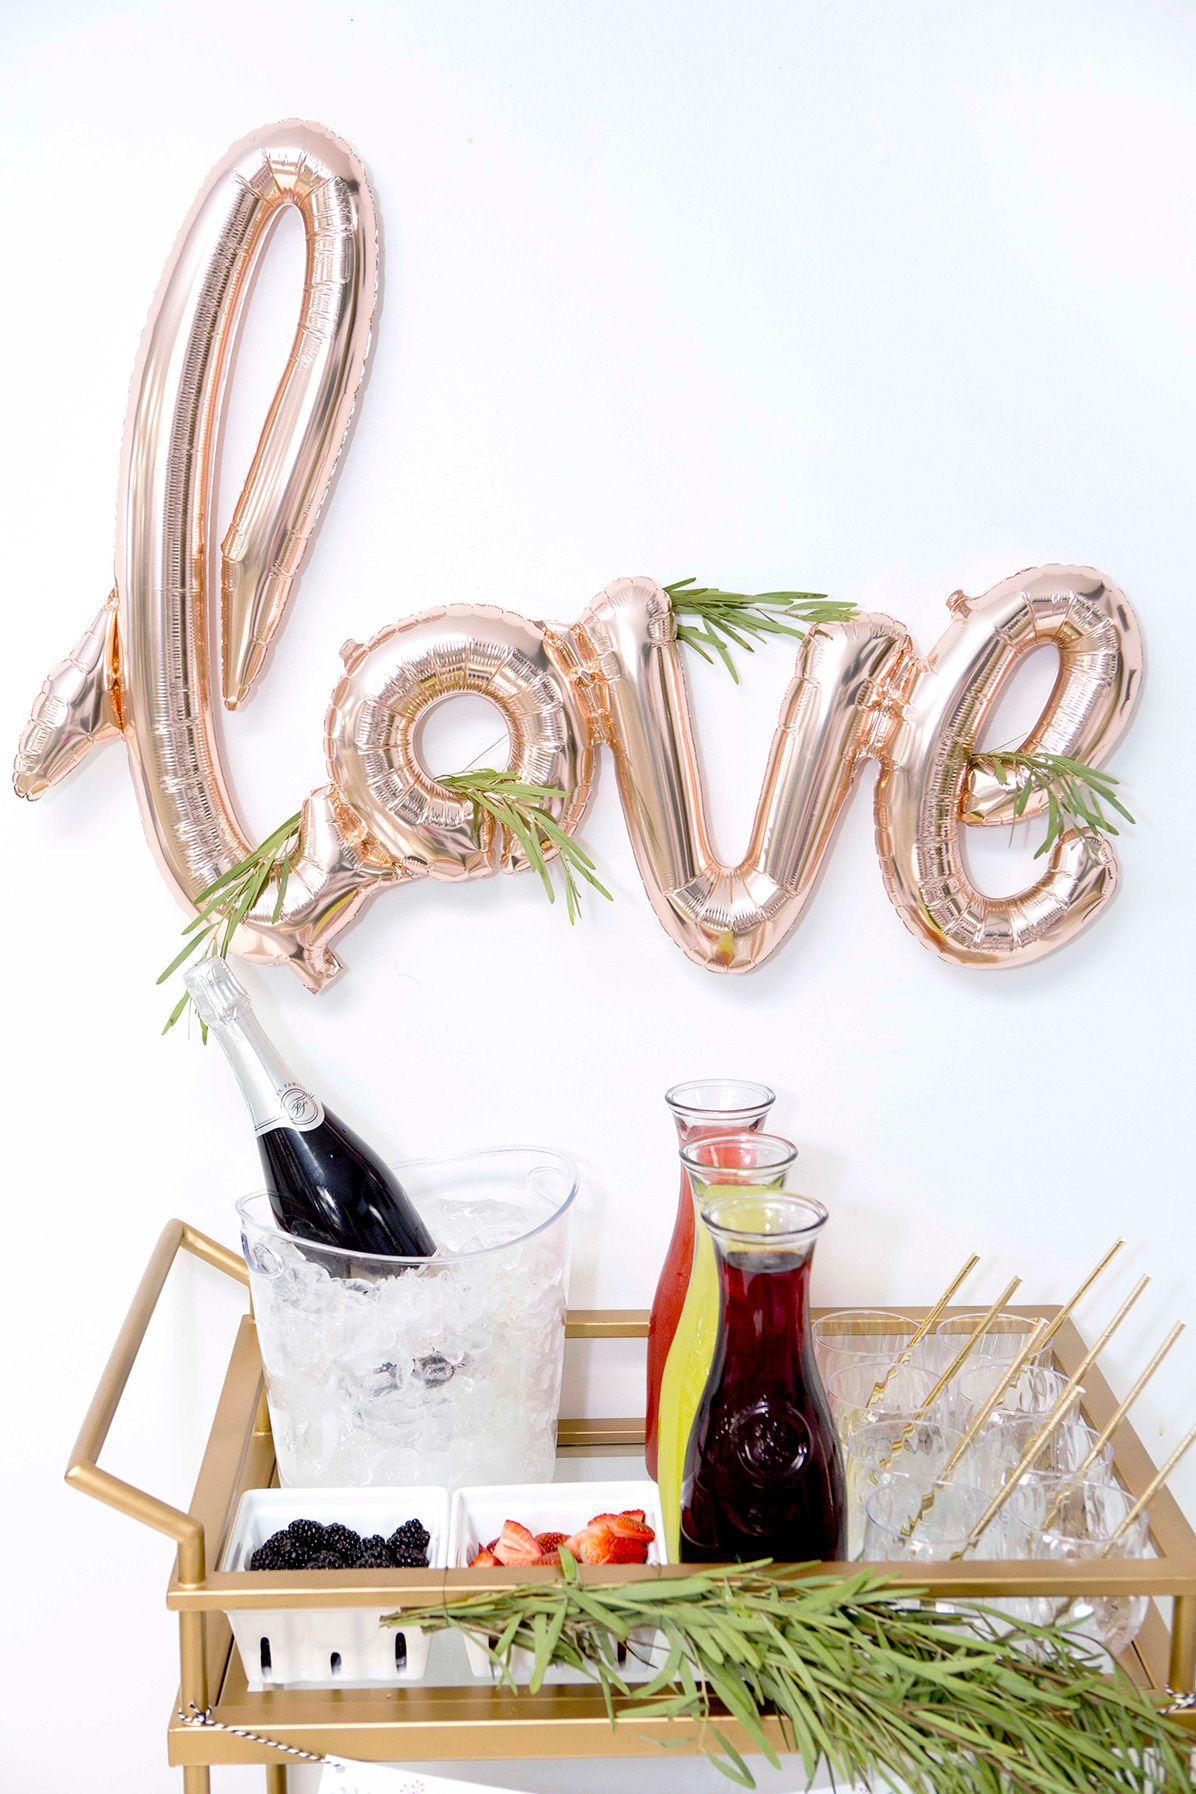 Design your own wedding dress for fun  Make Your Own Wedding Shower Mimosa Bar  Pinterest  Bridal showers